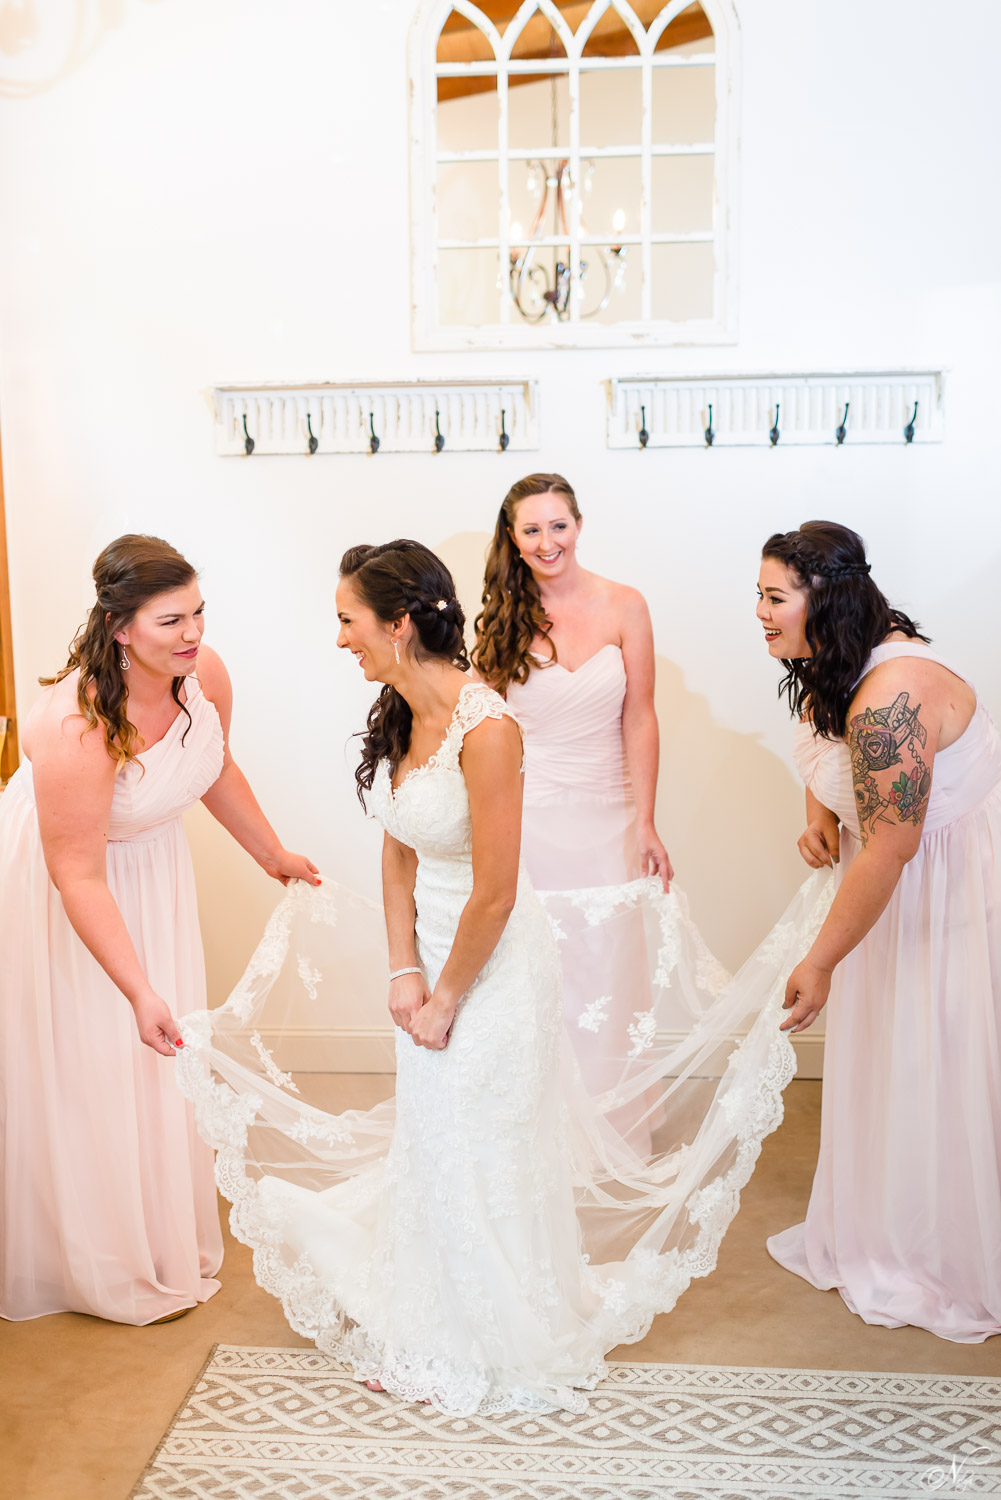 bridesmaids helping bride adjust her dress